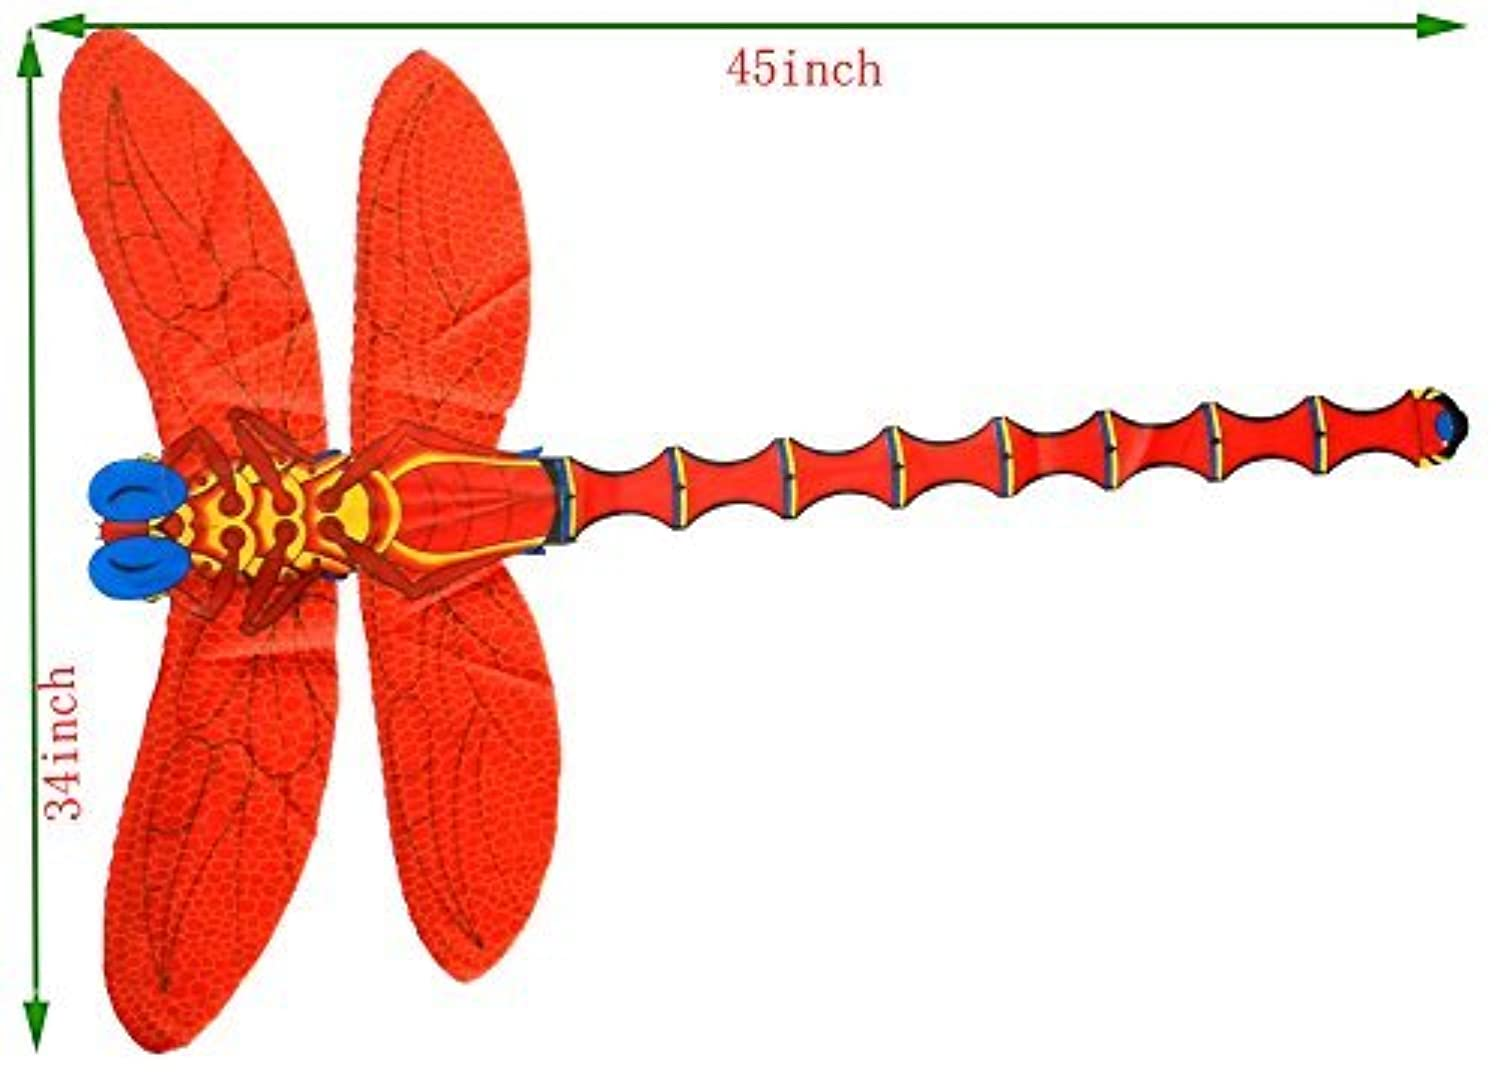 Foldaway RED Dragonfly Kite,include Kite Winder and Line,outdoor Toy by F&W [並行輸入品]